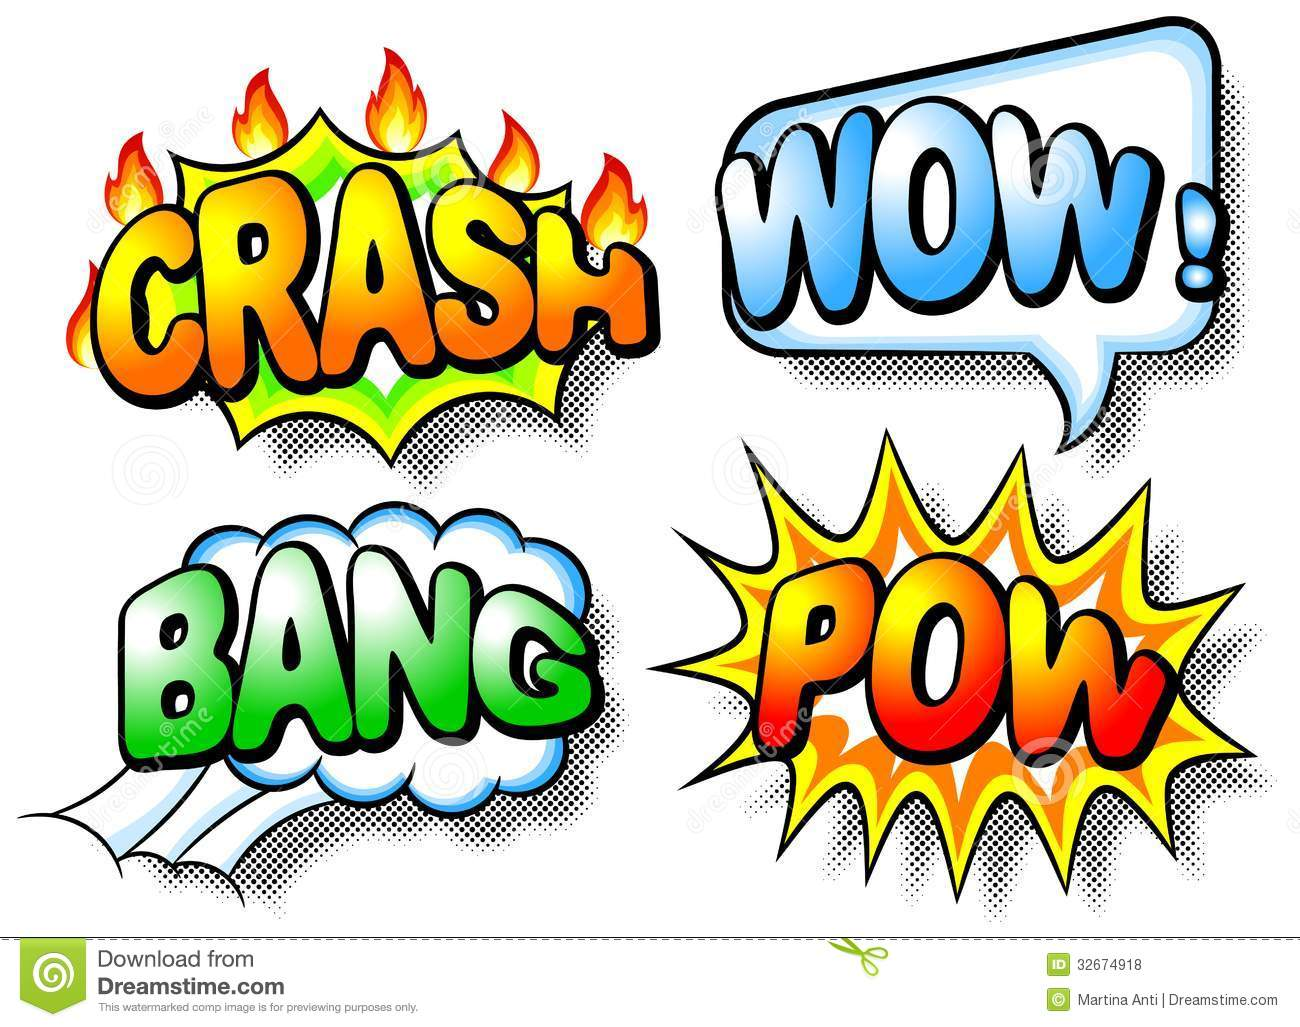 Boom clipart stock. Bang free download best